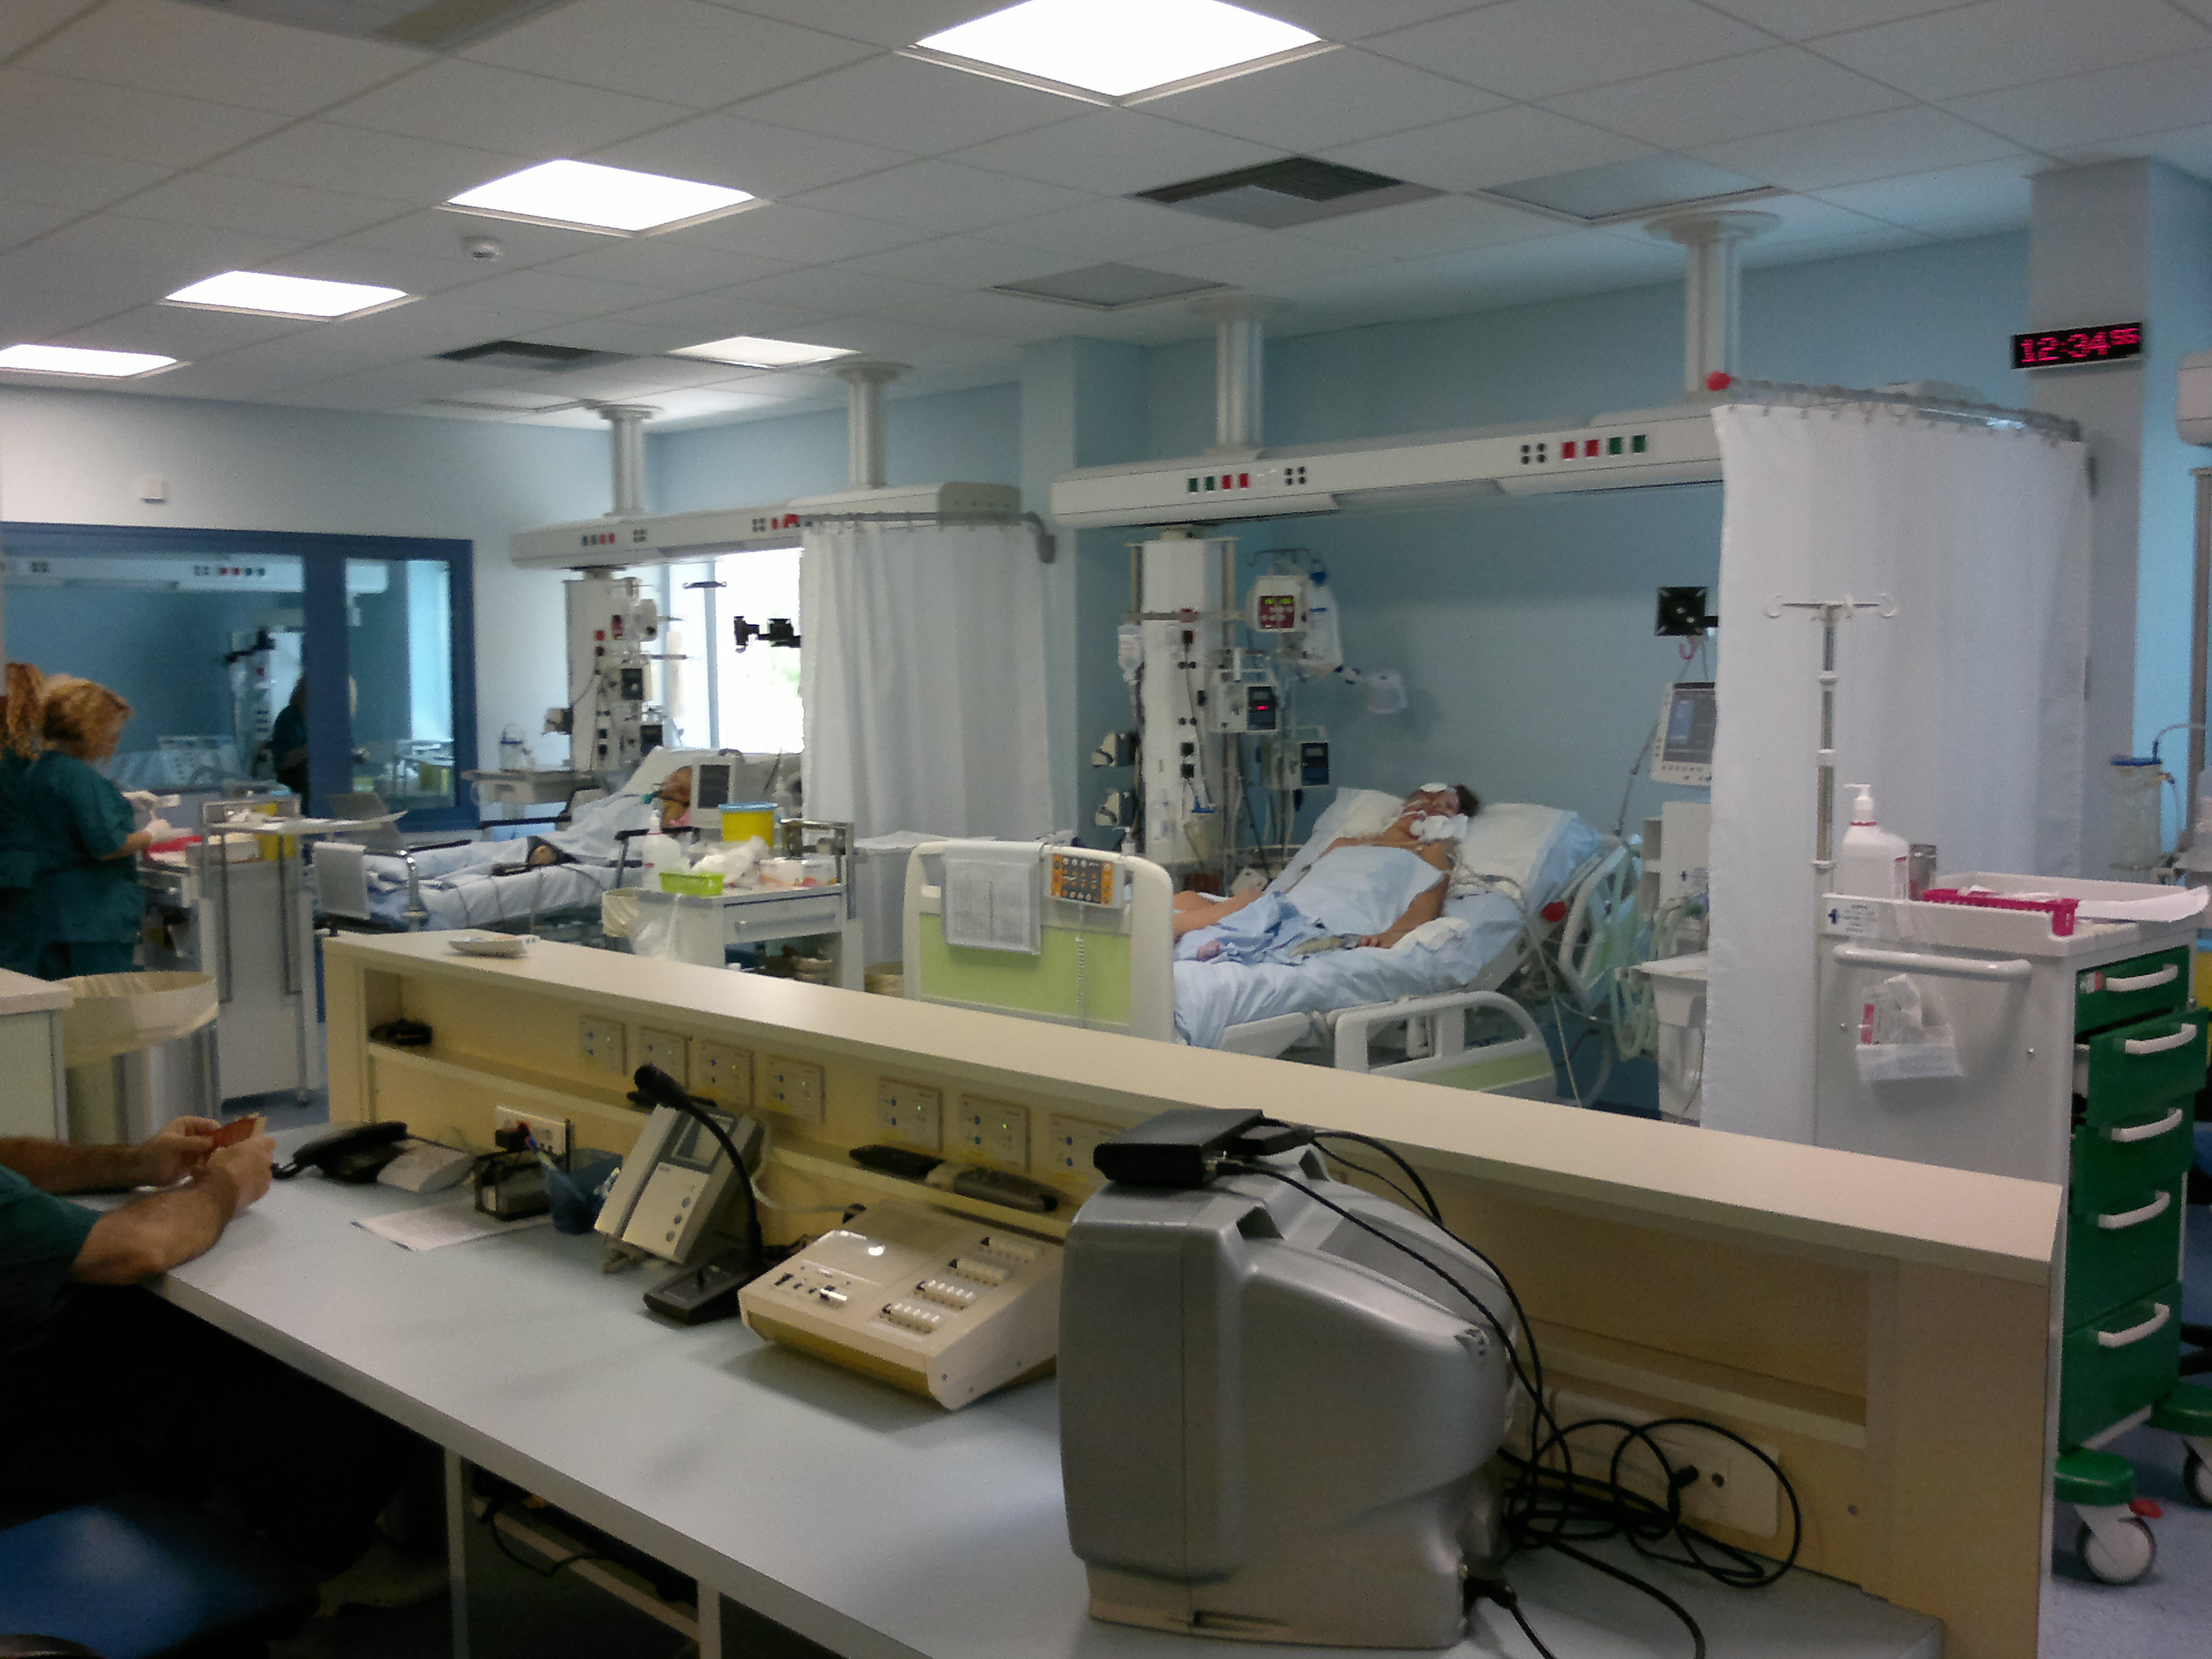 The Paediatric Intensive Care Unit at the University Hospital of Heraklion